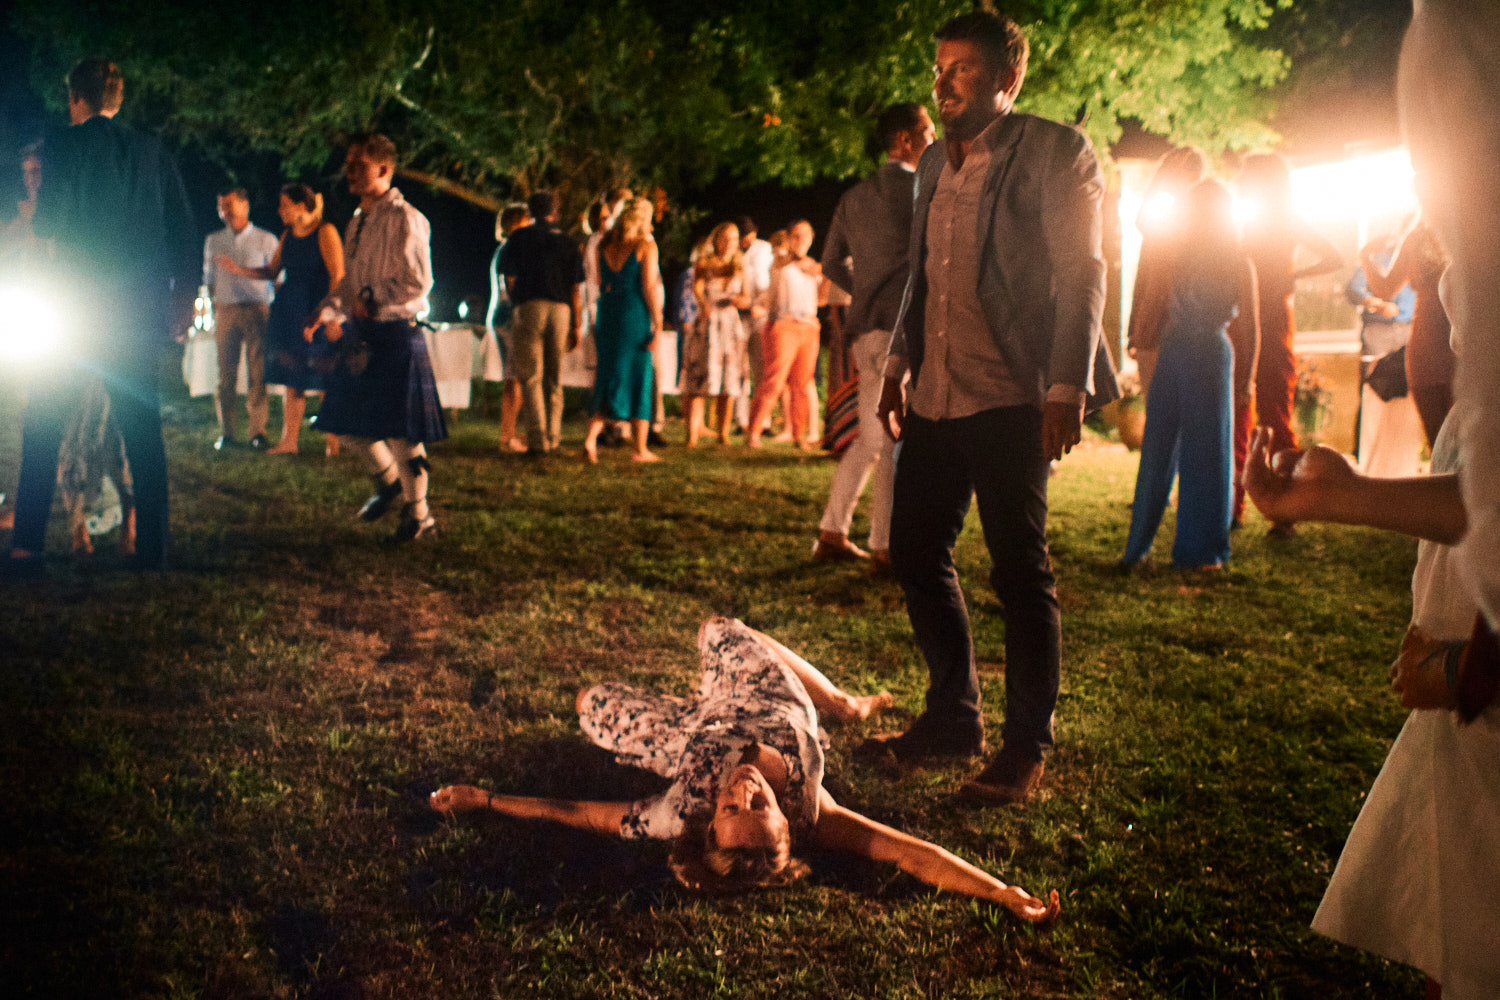 An exhausted dancer lies down on the grass at an outdoor wedding reception